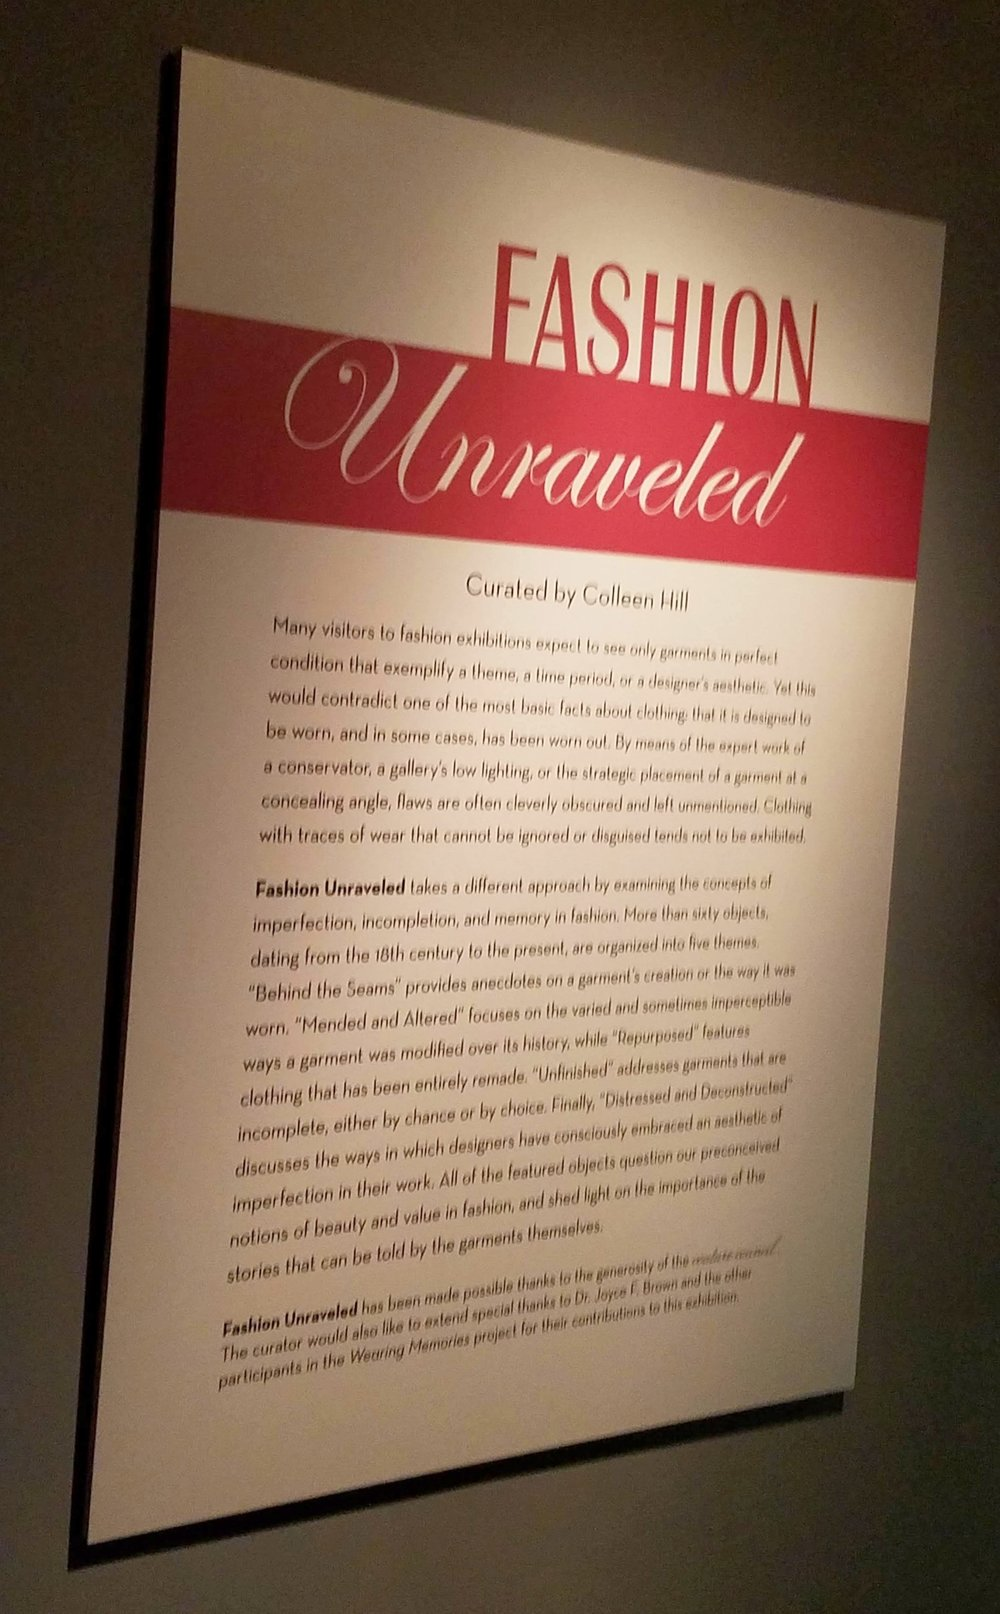 'Fashion Unraveled' Exhibit at the Fashion Institute of Technology (FIT) Museum